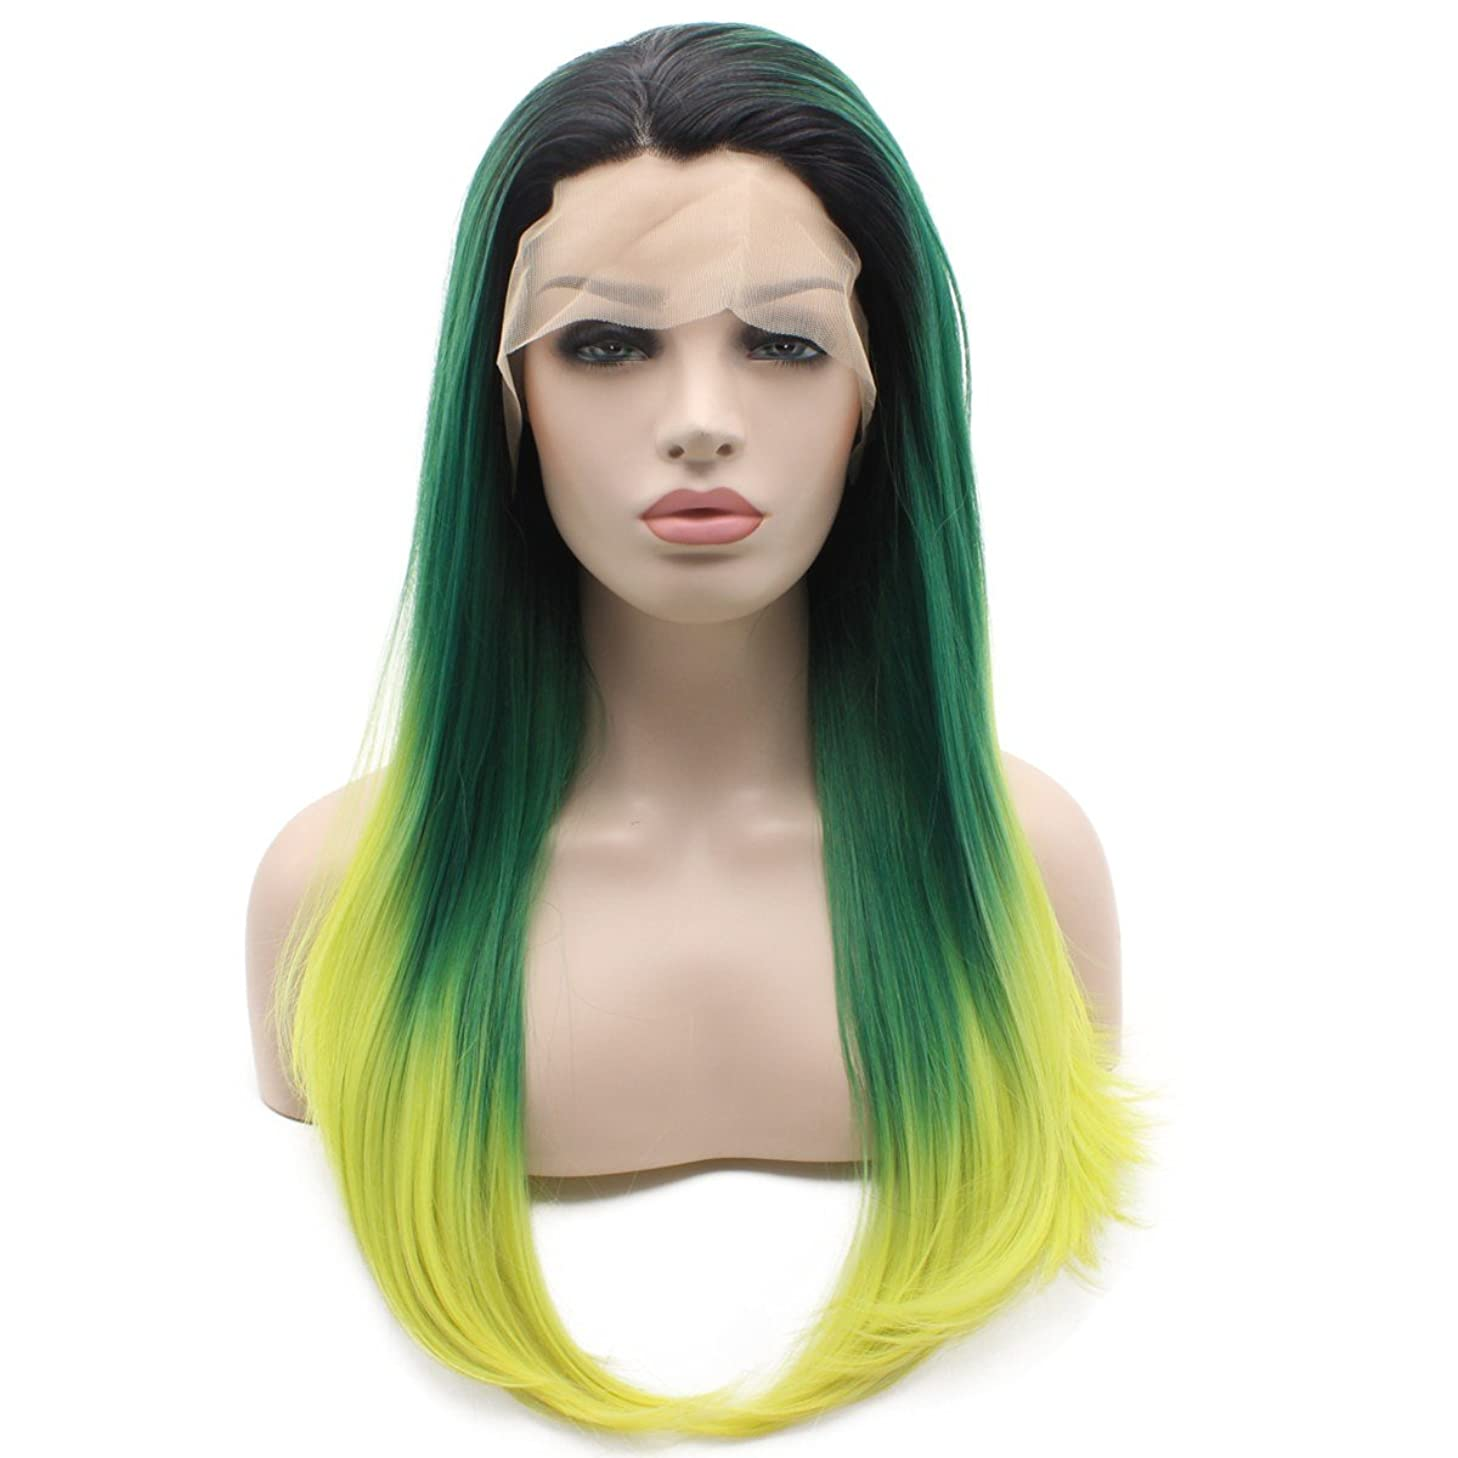 Iewig Long Straight Synthetic Lace Front Wig Half Hand Tied Heat Friendly Dark Root Green Yellow Three Tone Wig